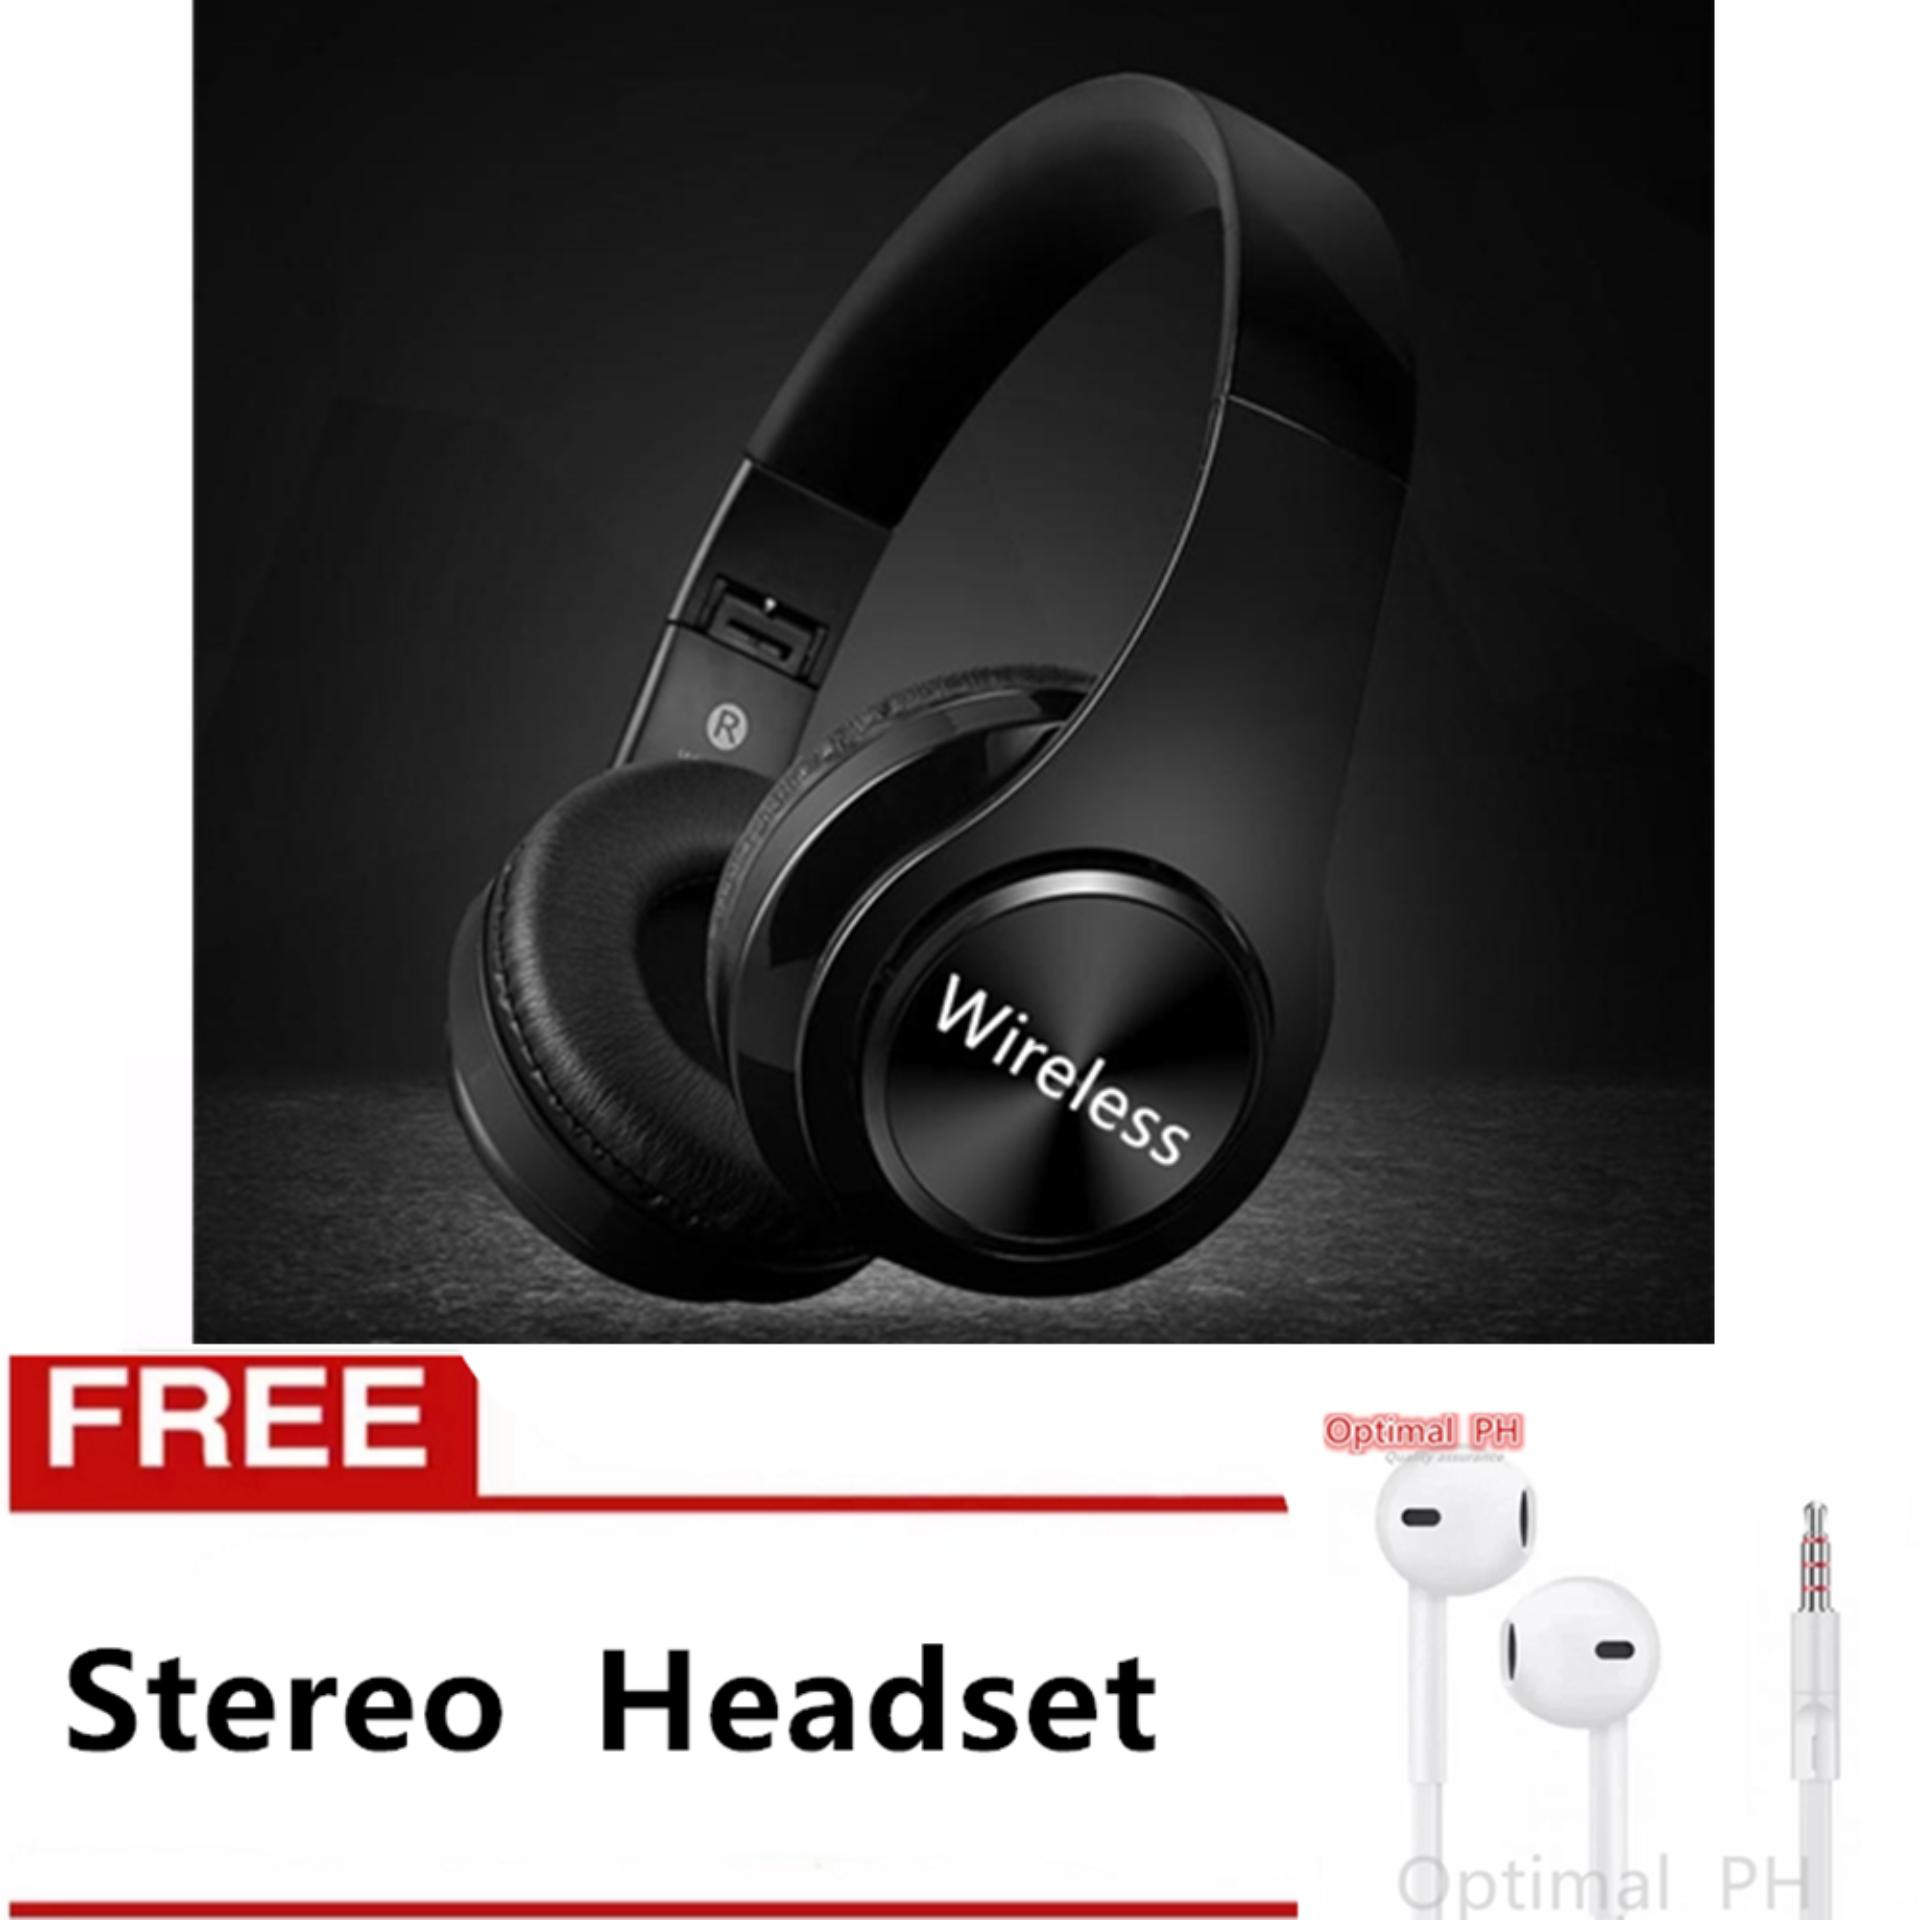 Buy Sell Cheapest Ak Bluetooth Stereo Best Quality Product Deals Headset Jbll Jbl 424 Black Free Universal